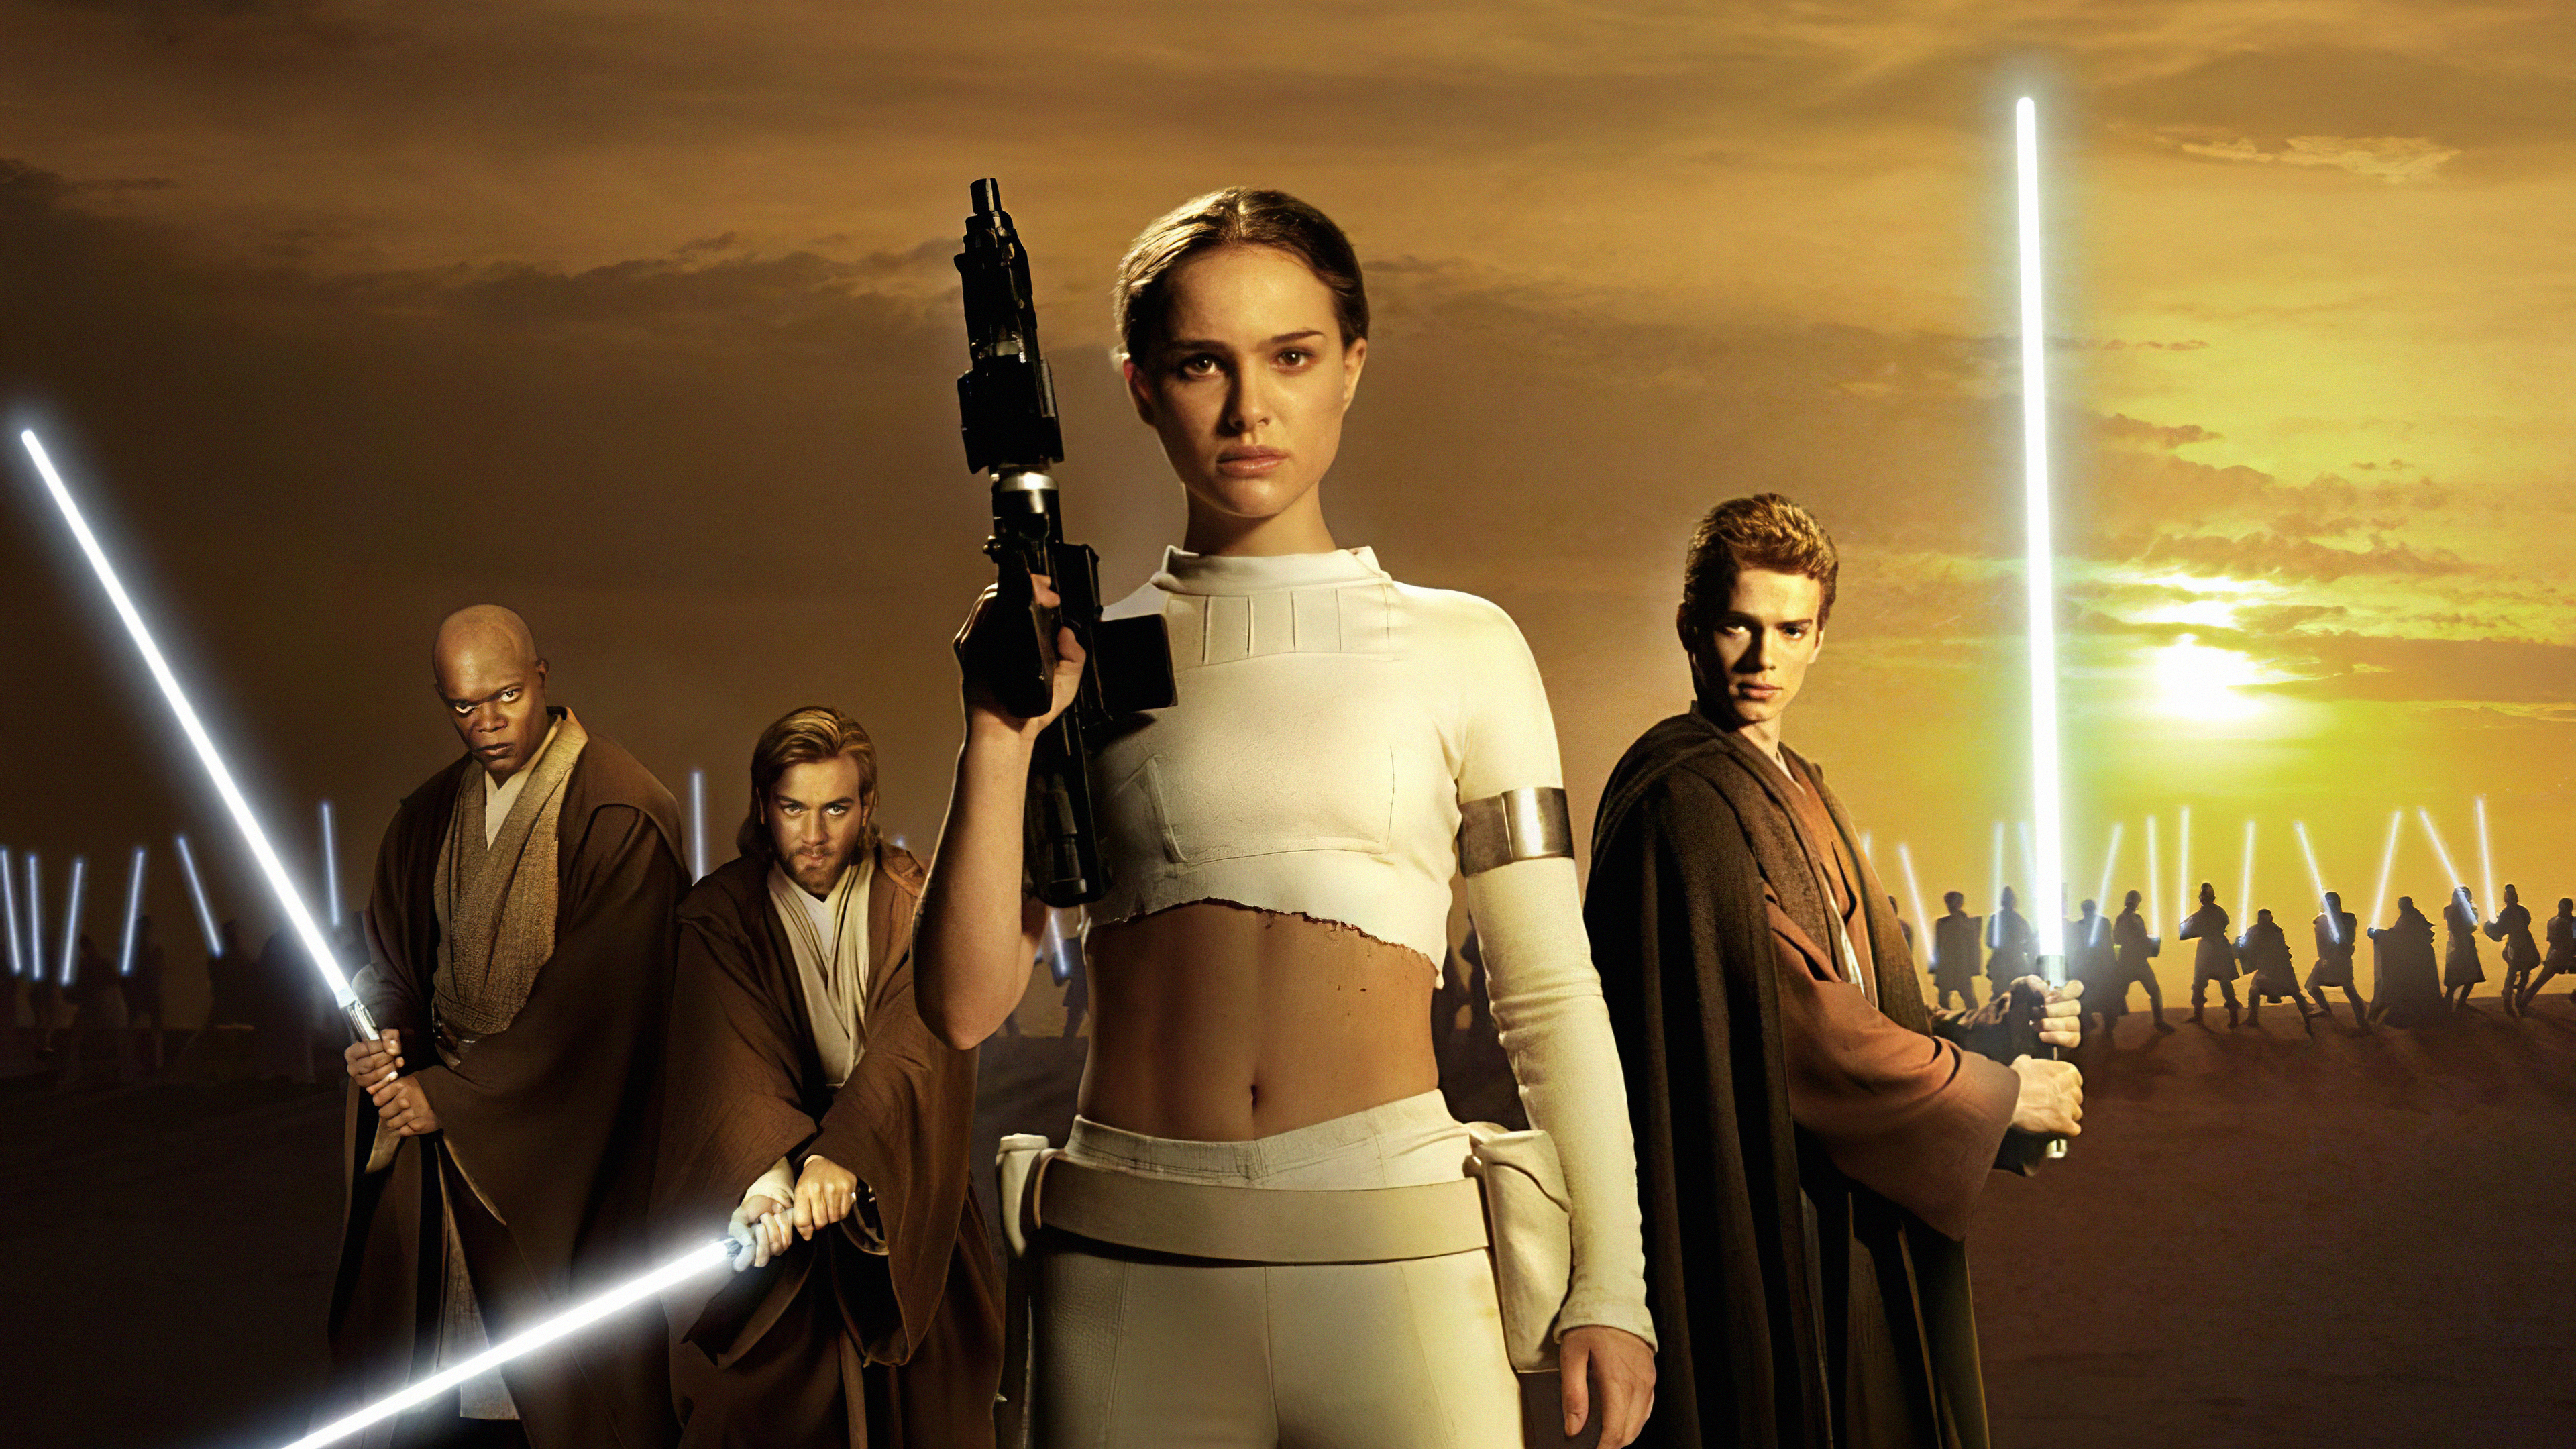 1920x1080 Star Wars Episode Ii Attack Of The Clones Natalie Portman 4k Laptop Full Hd 1080p Hd 4k Wallpapers Images Backgrounds Photos And Pictures